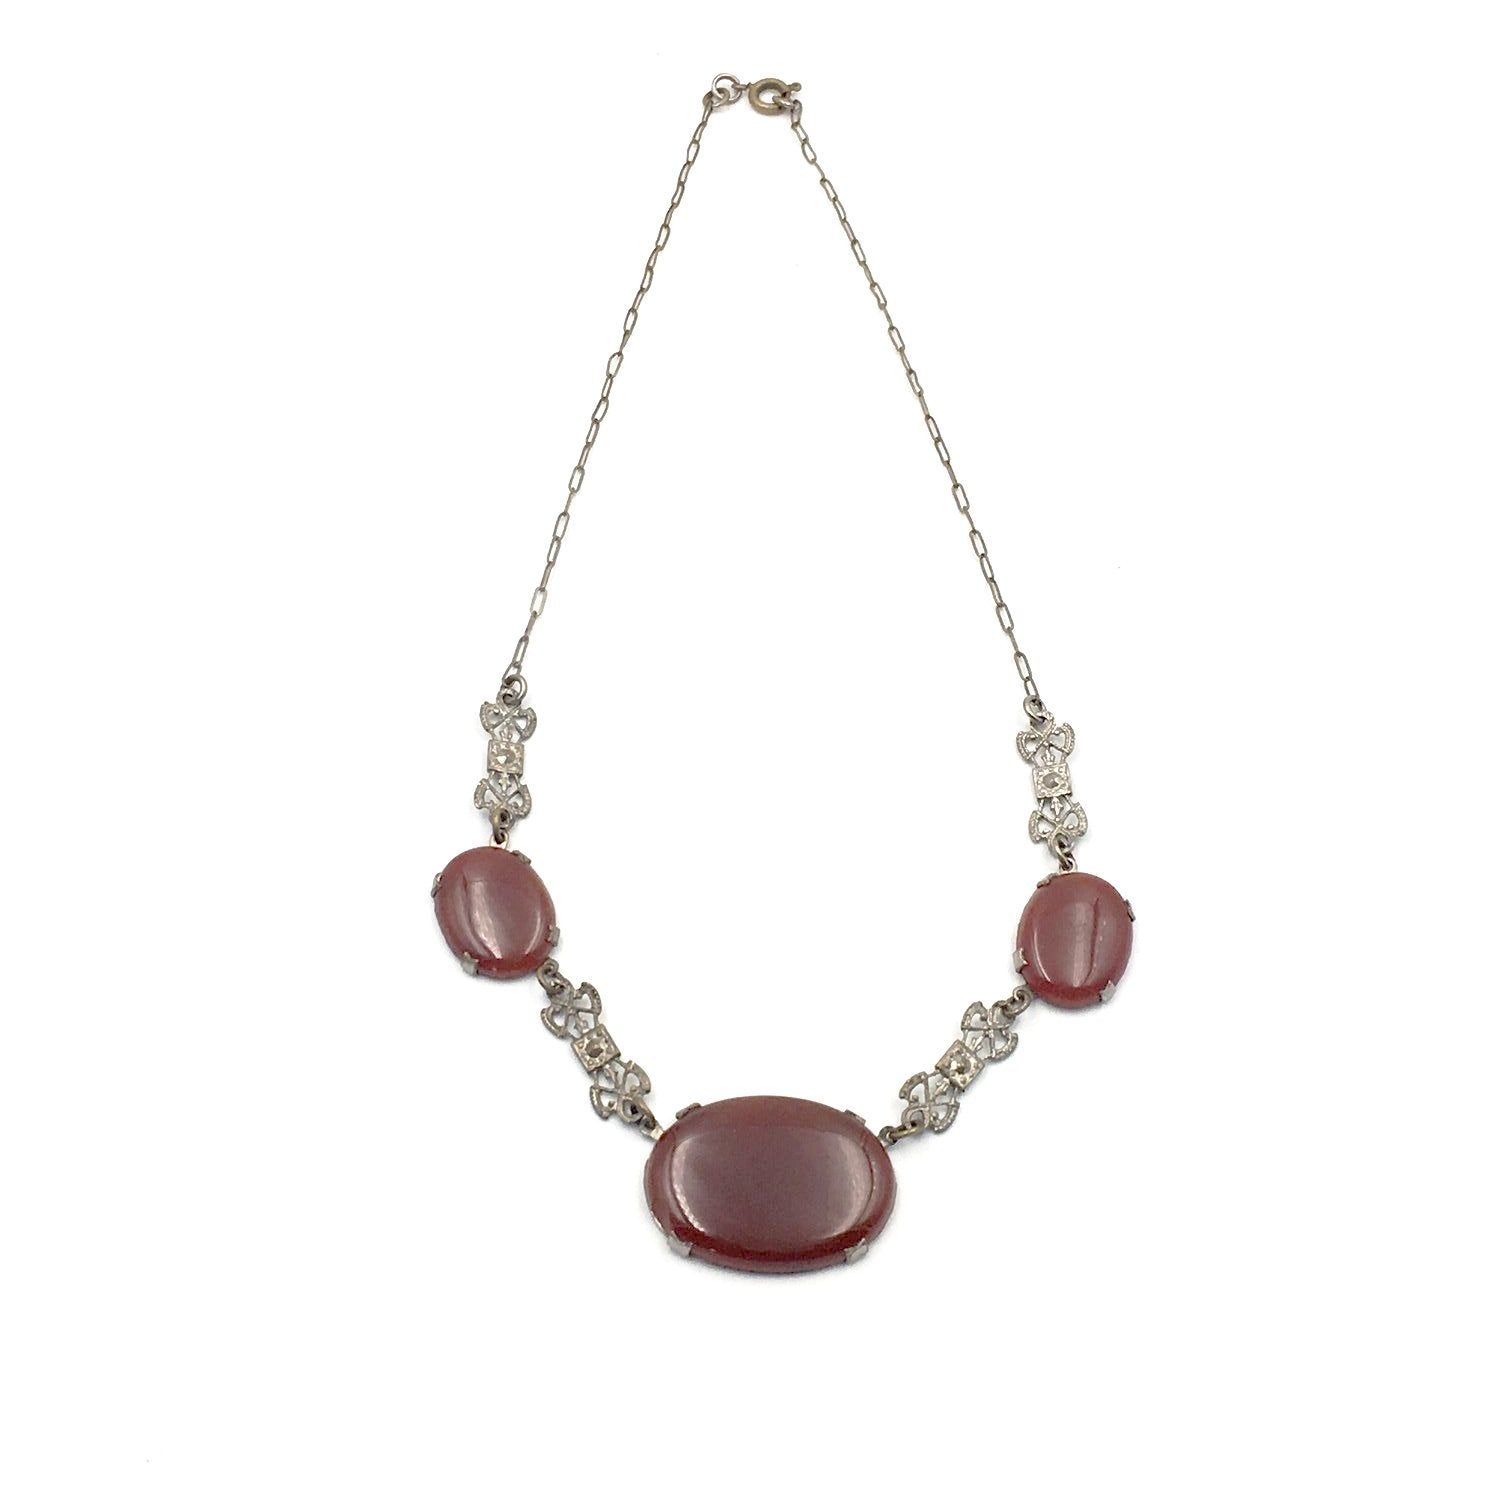 vintage 1920's carnelian necklace